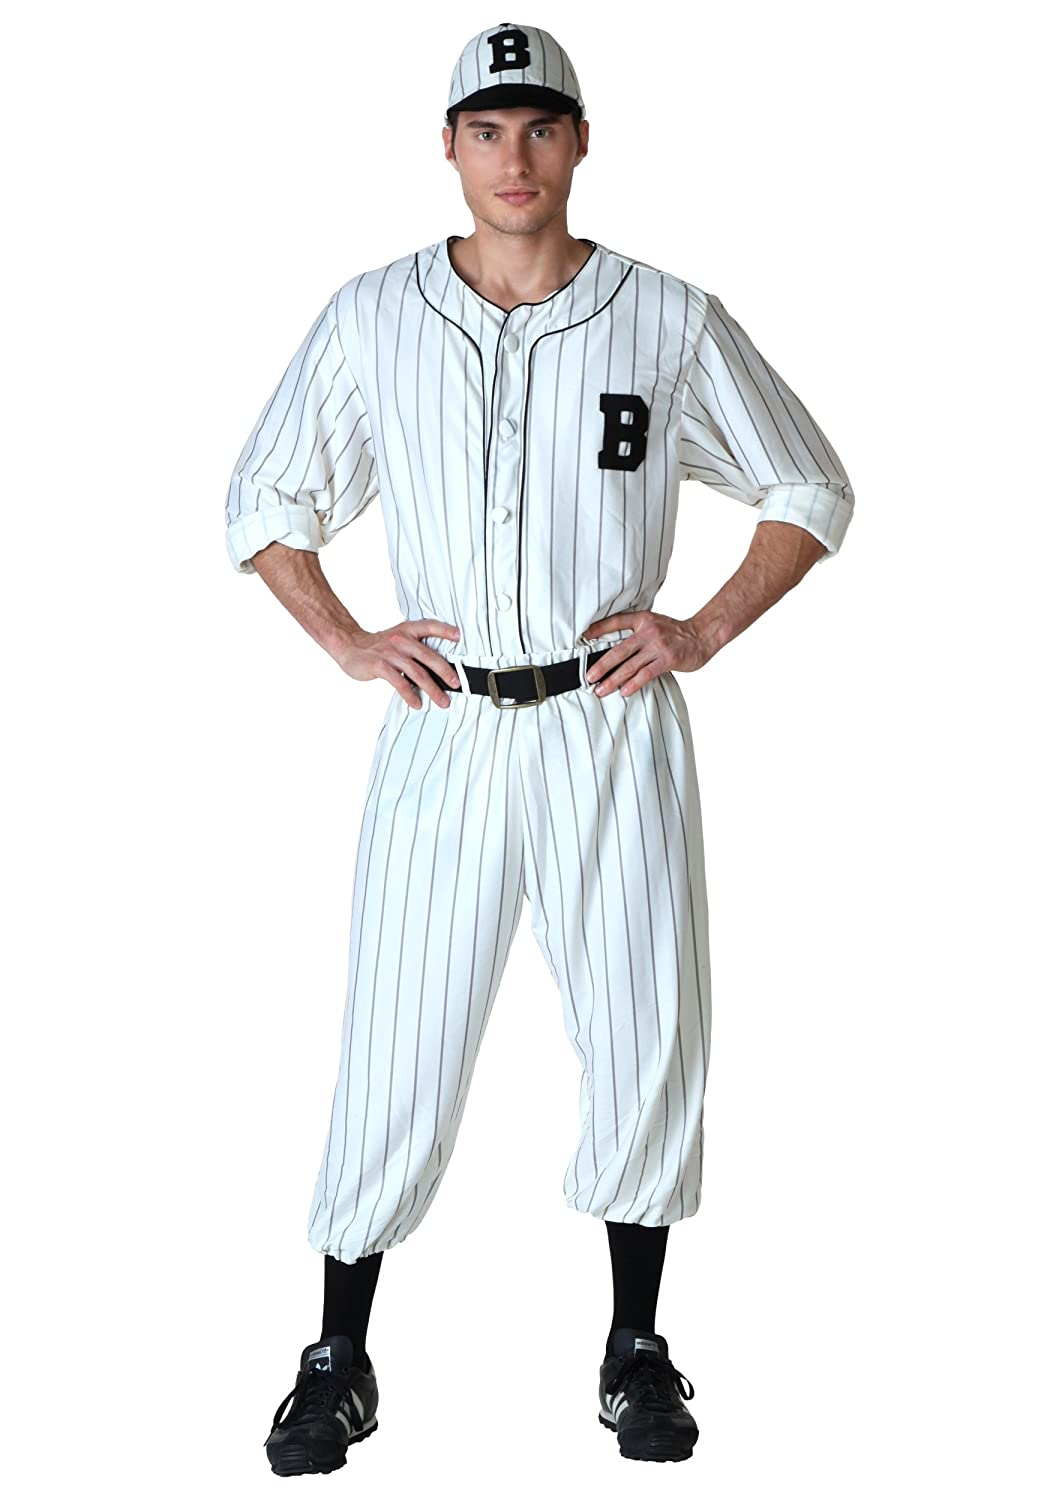 1920s Men's Costumes Adult Vintage Baseball Costume $49.99 AT vintagedancer.com